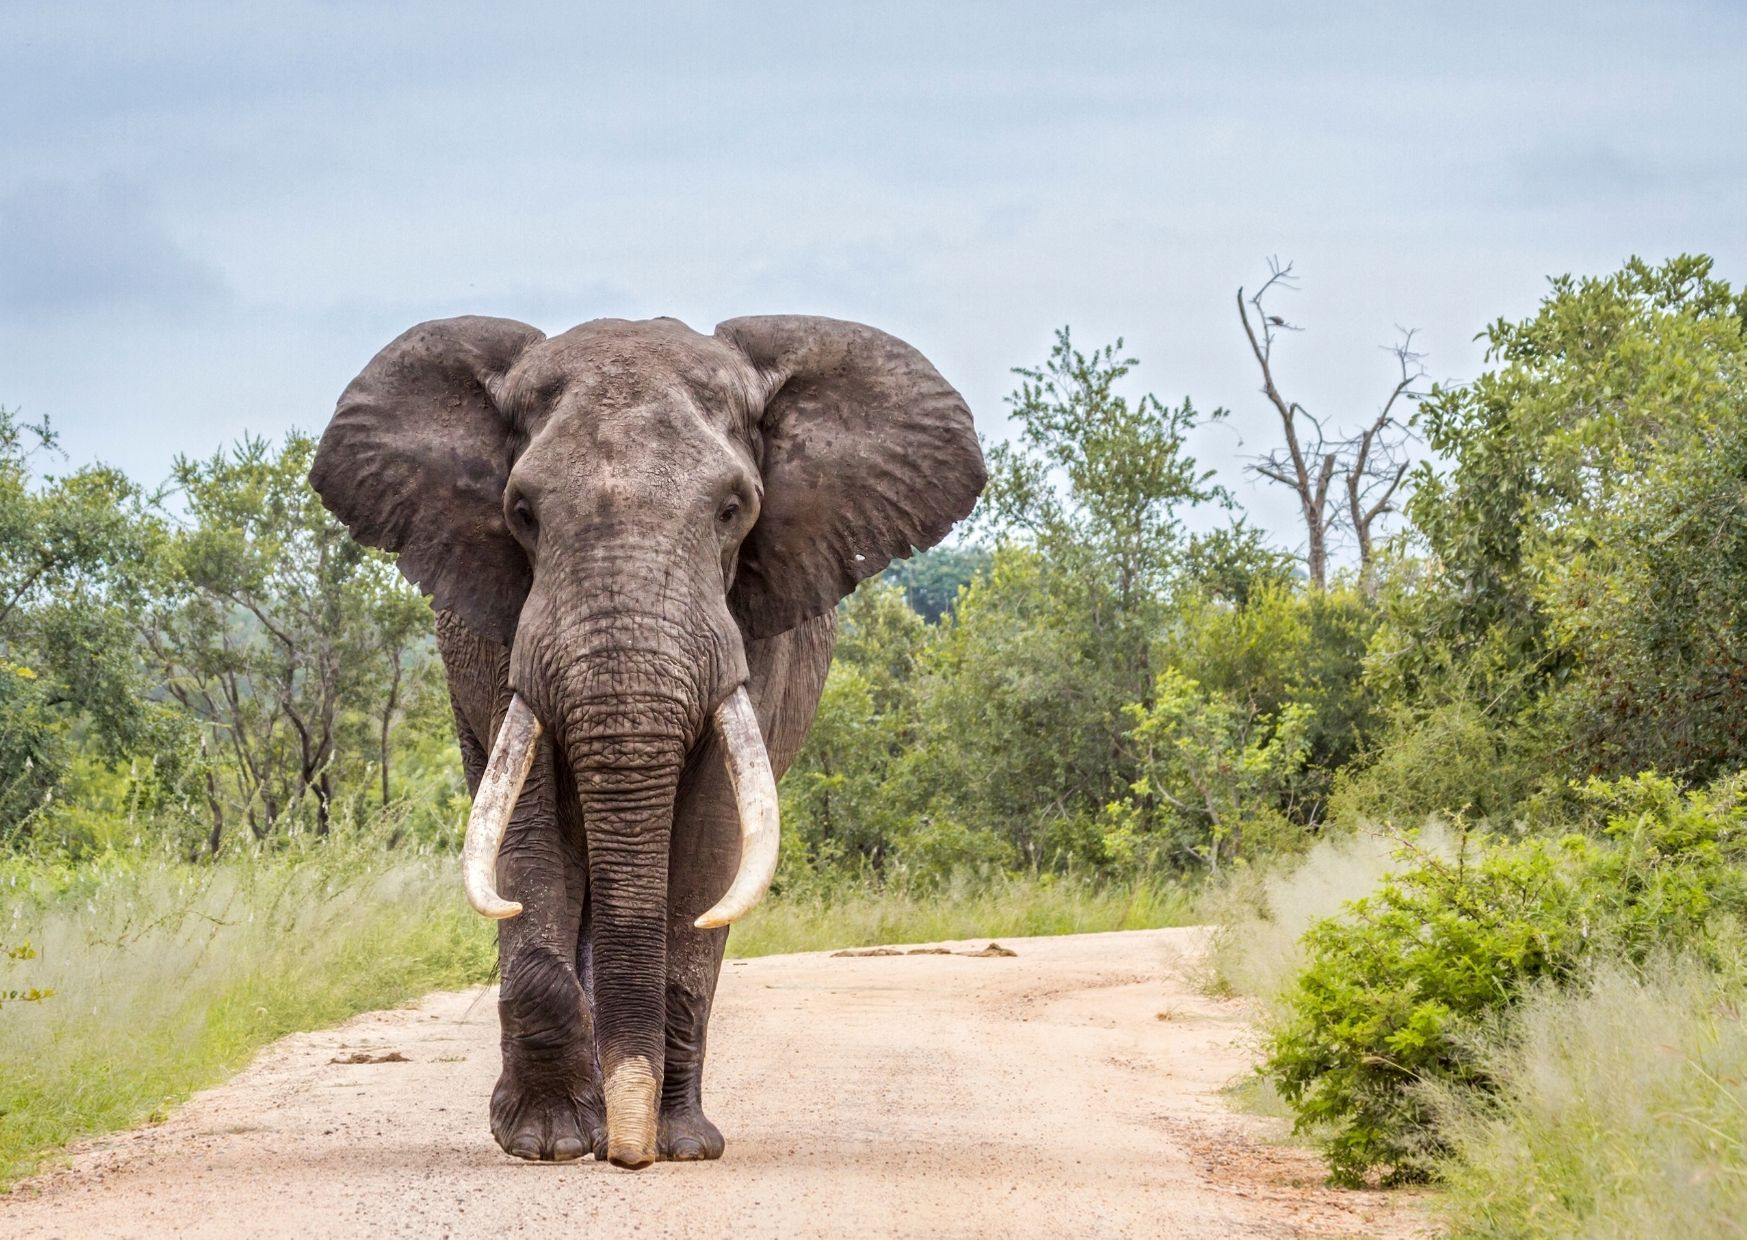 African elephant walking on a dirt rack surrounded by green trees and bushes